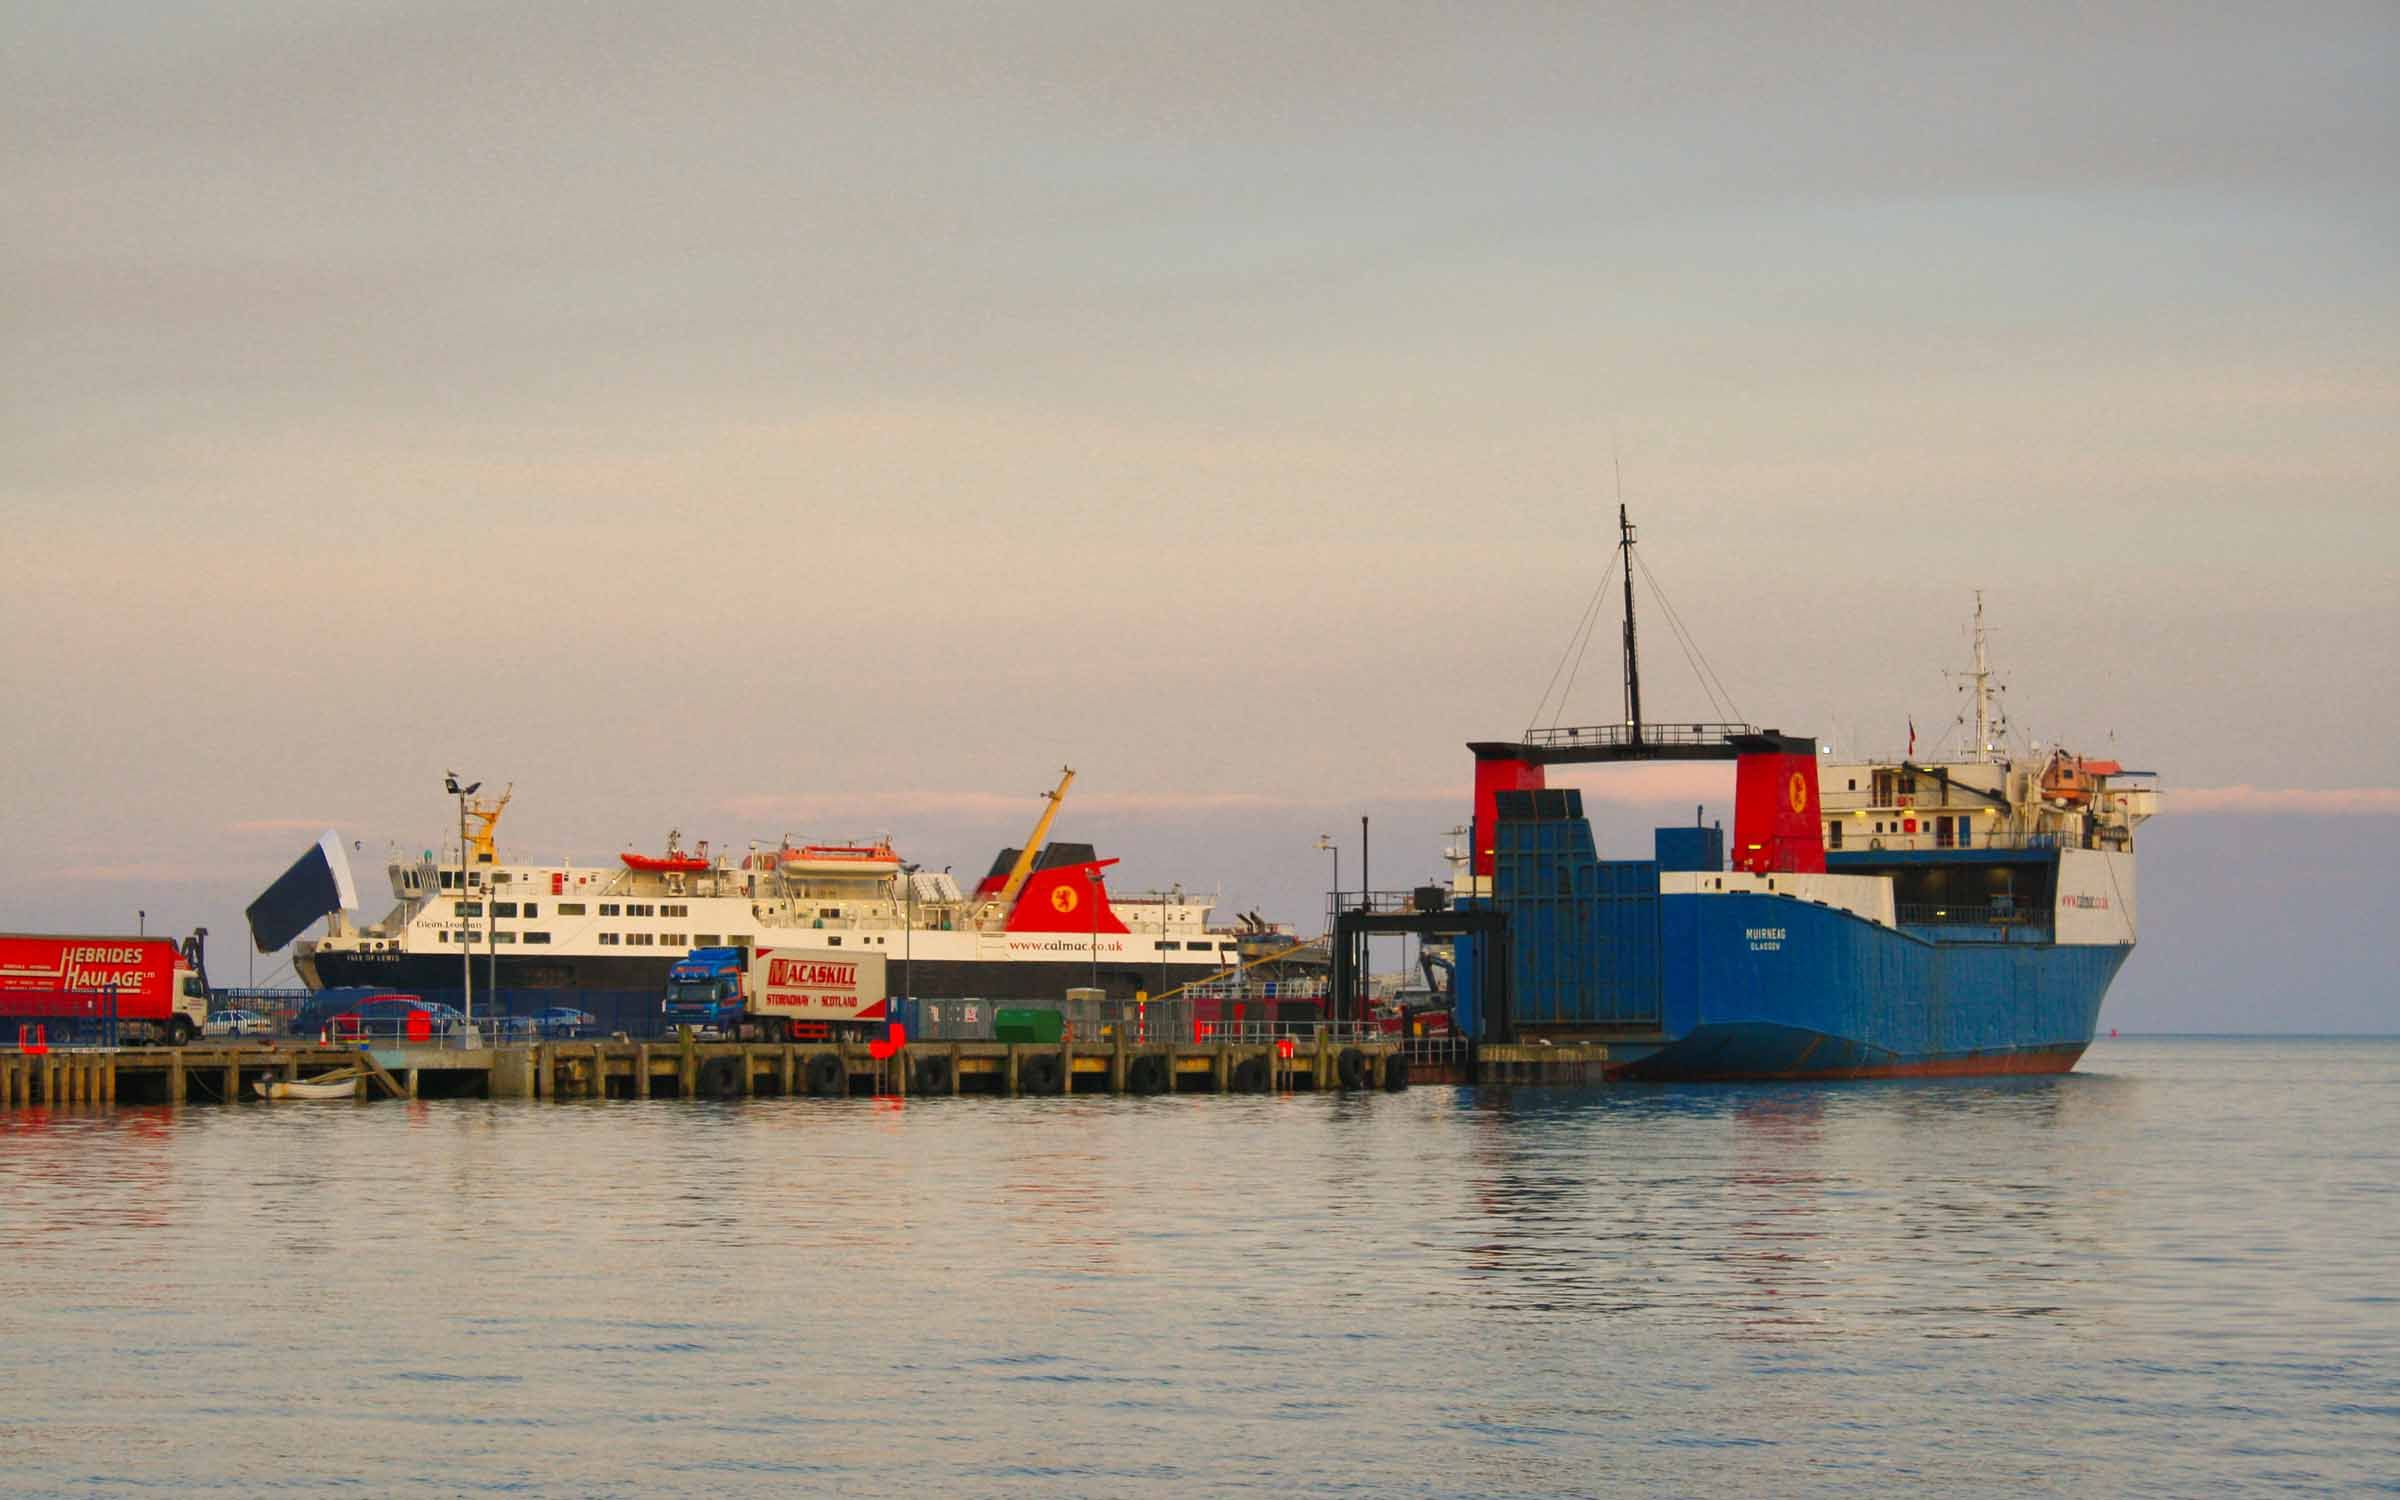 Muirneag and Isle of Lewis at Stornoway (Ships of CalMac)